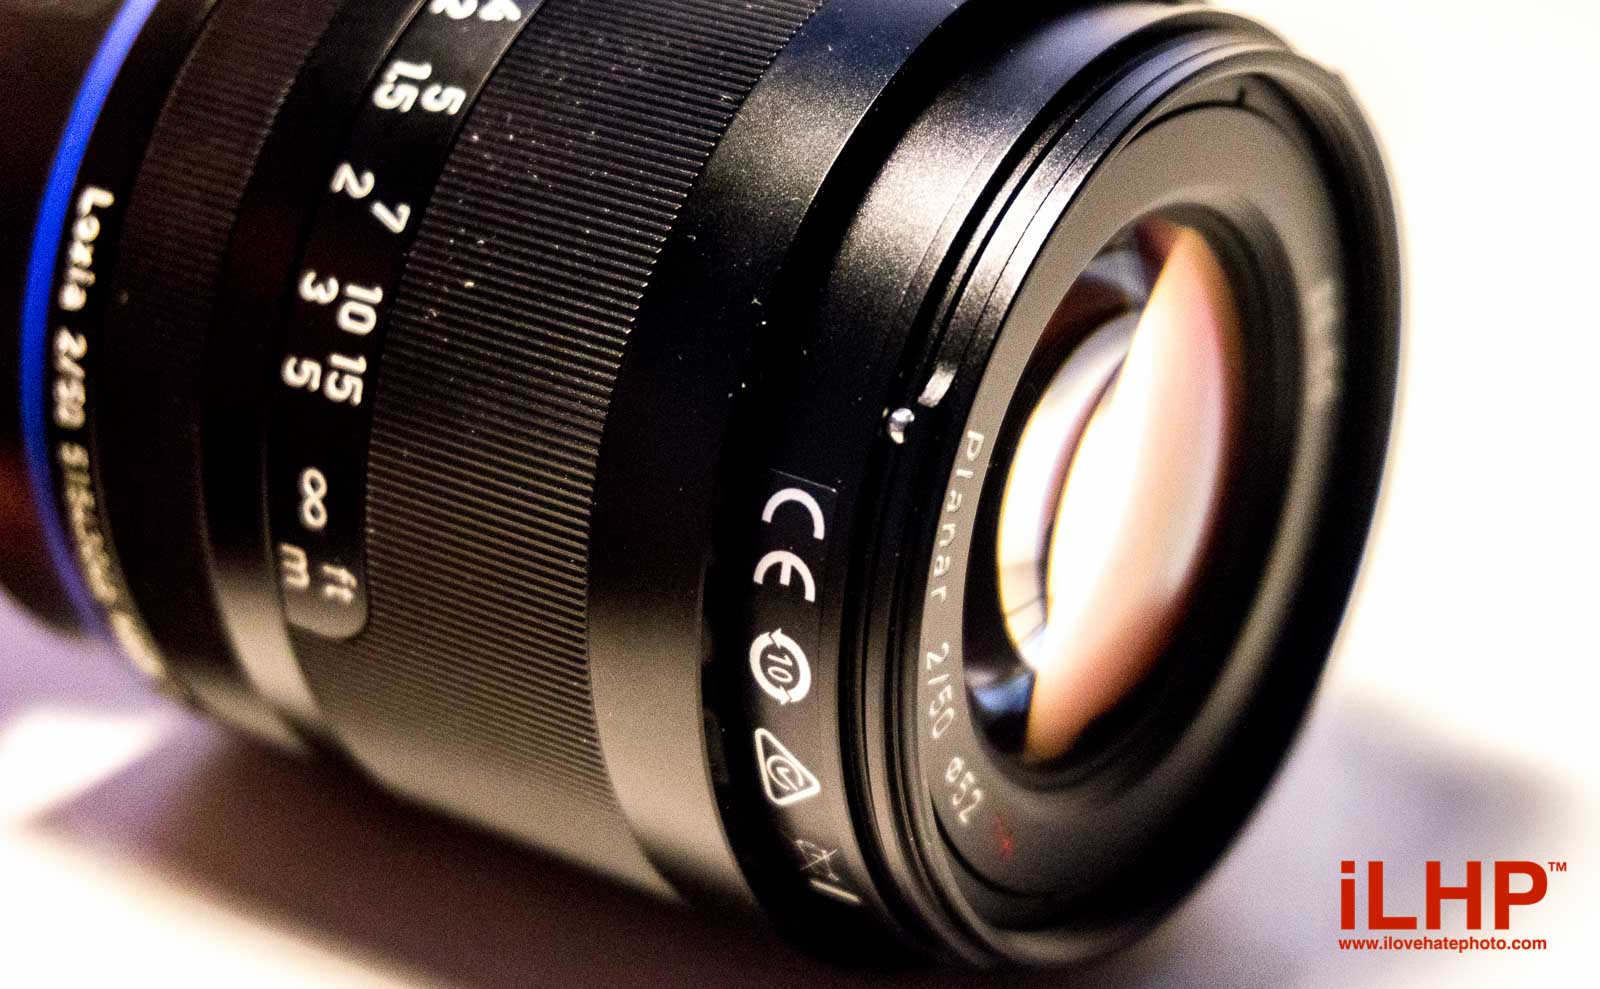 Most twist-on lens hoods have a plastic notch cut into the barrel that holds the hood in place after you rotate it past a certain point. Presuming that plastic can be worn down over time, Zeiss has replaced it with a tiny metal ball bearing. This is fastidious attention to detail.